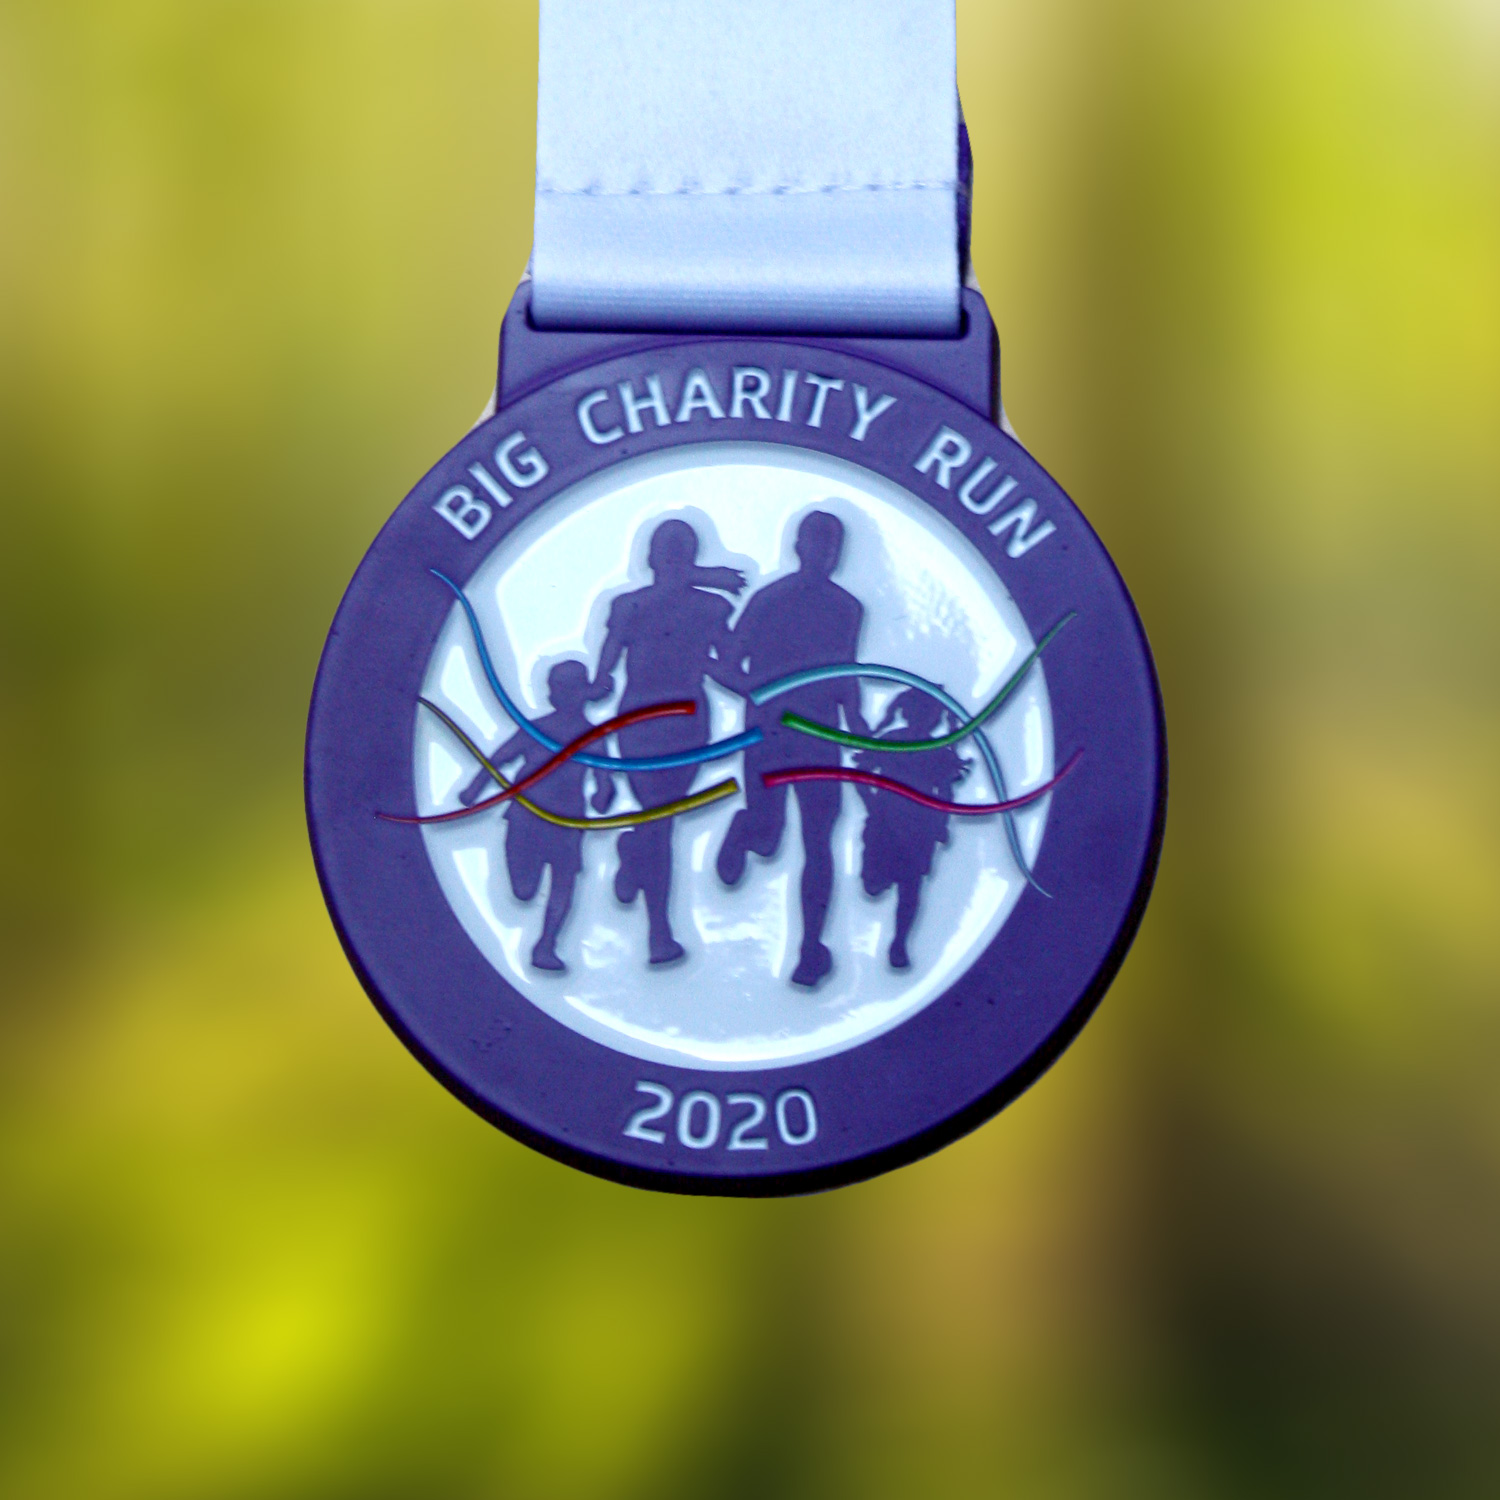 Virtual Race - The Big Charity Run